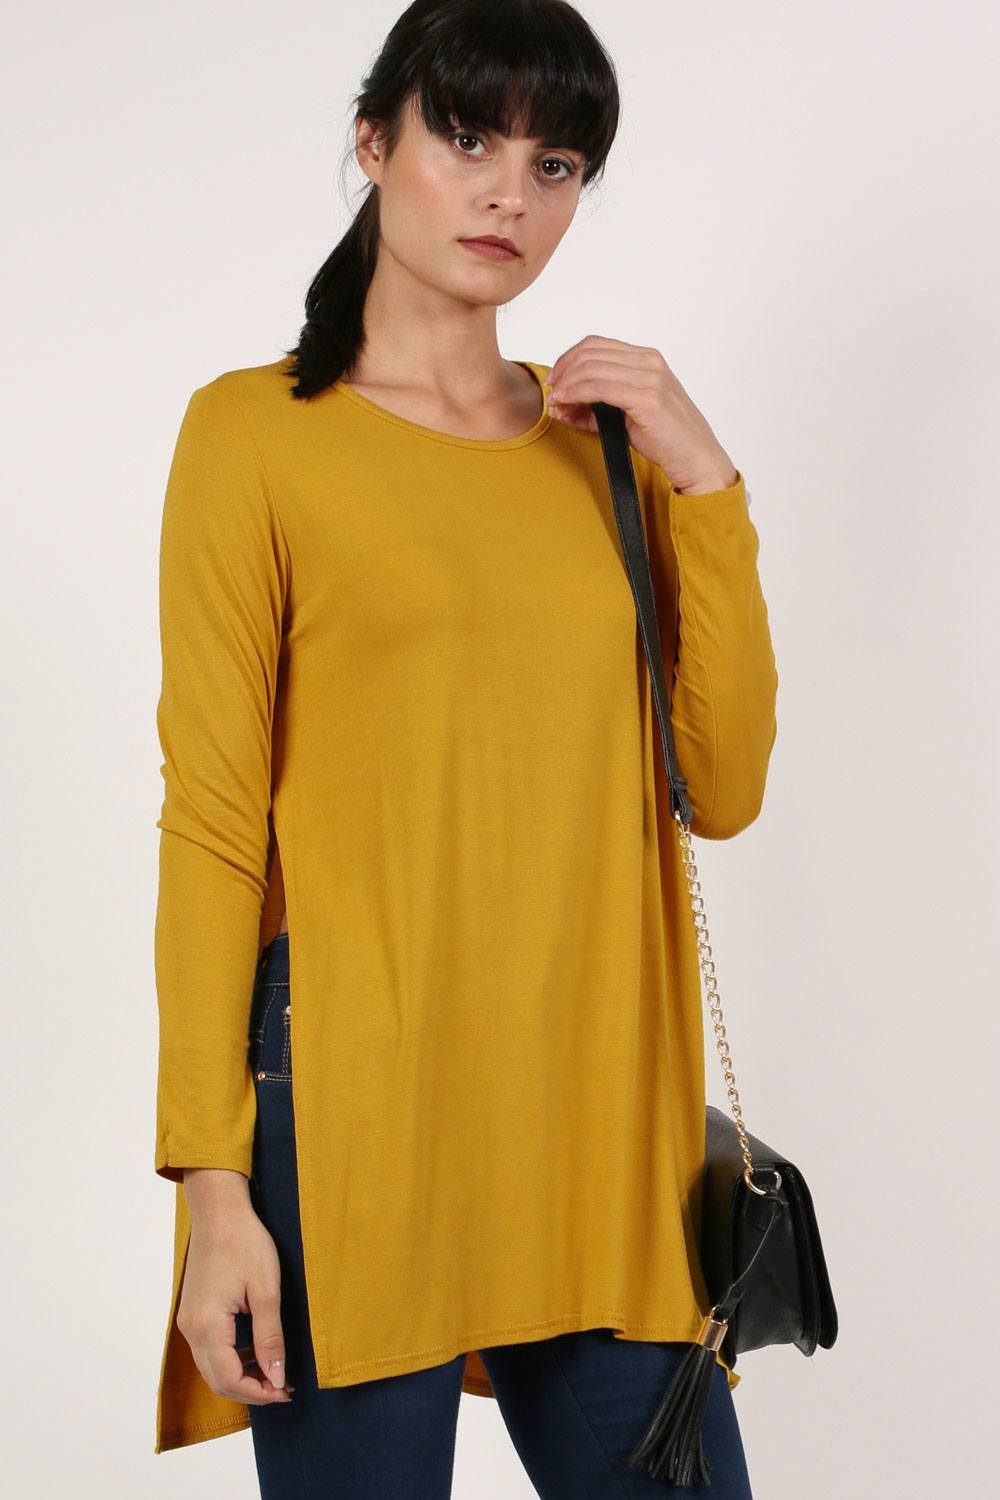 Long Sleeve Side Split Top in Mustard Yellow 0